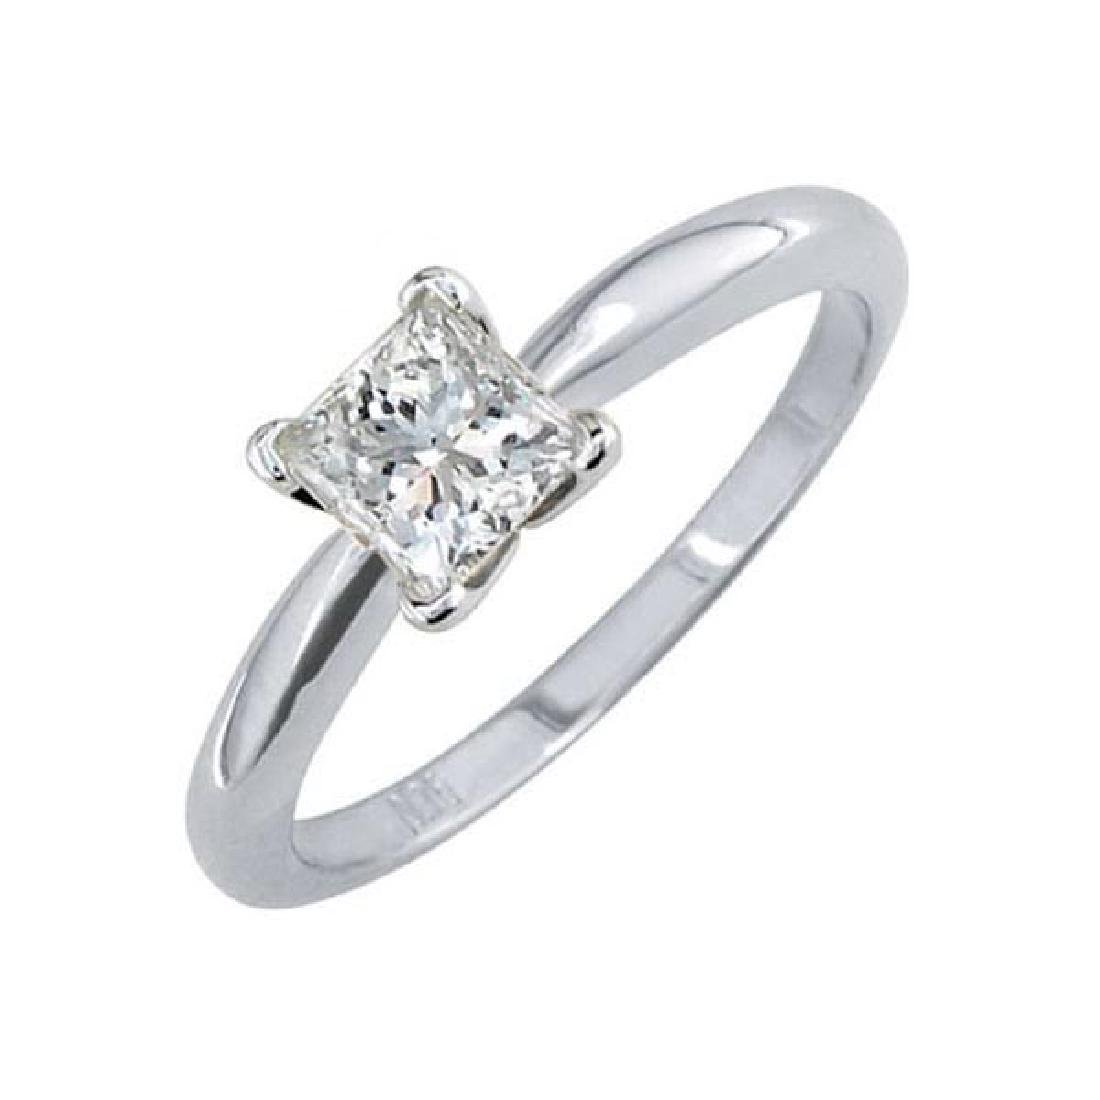 Certified 1.04 CTW Princess Diamond Solitaire 14k Ring